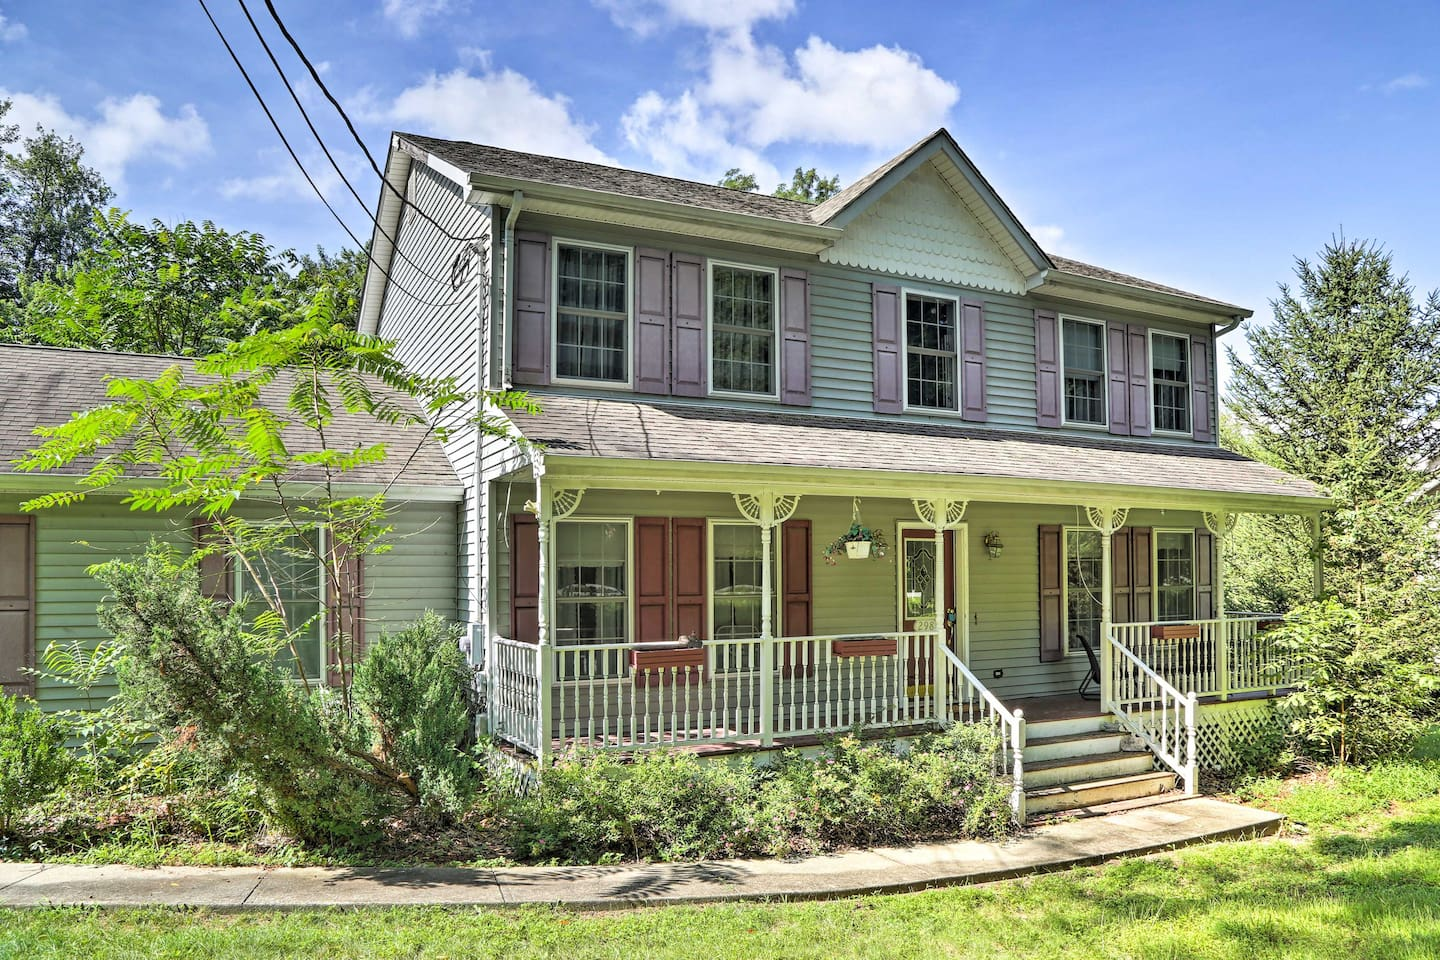 This vacation rental home has 4 bedrooms, 3 bathrooms, and room for 14!